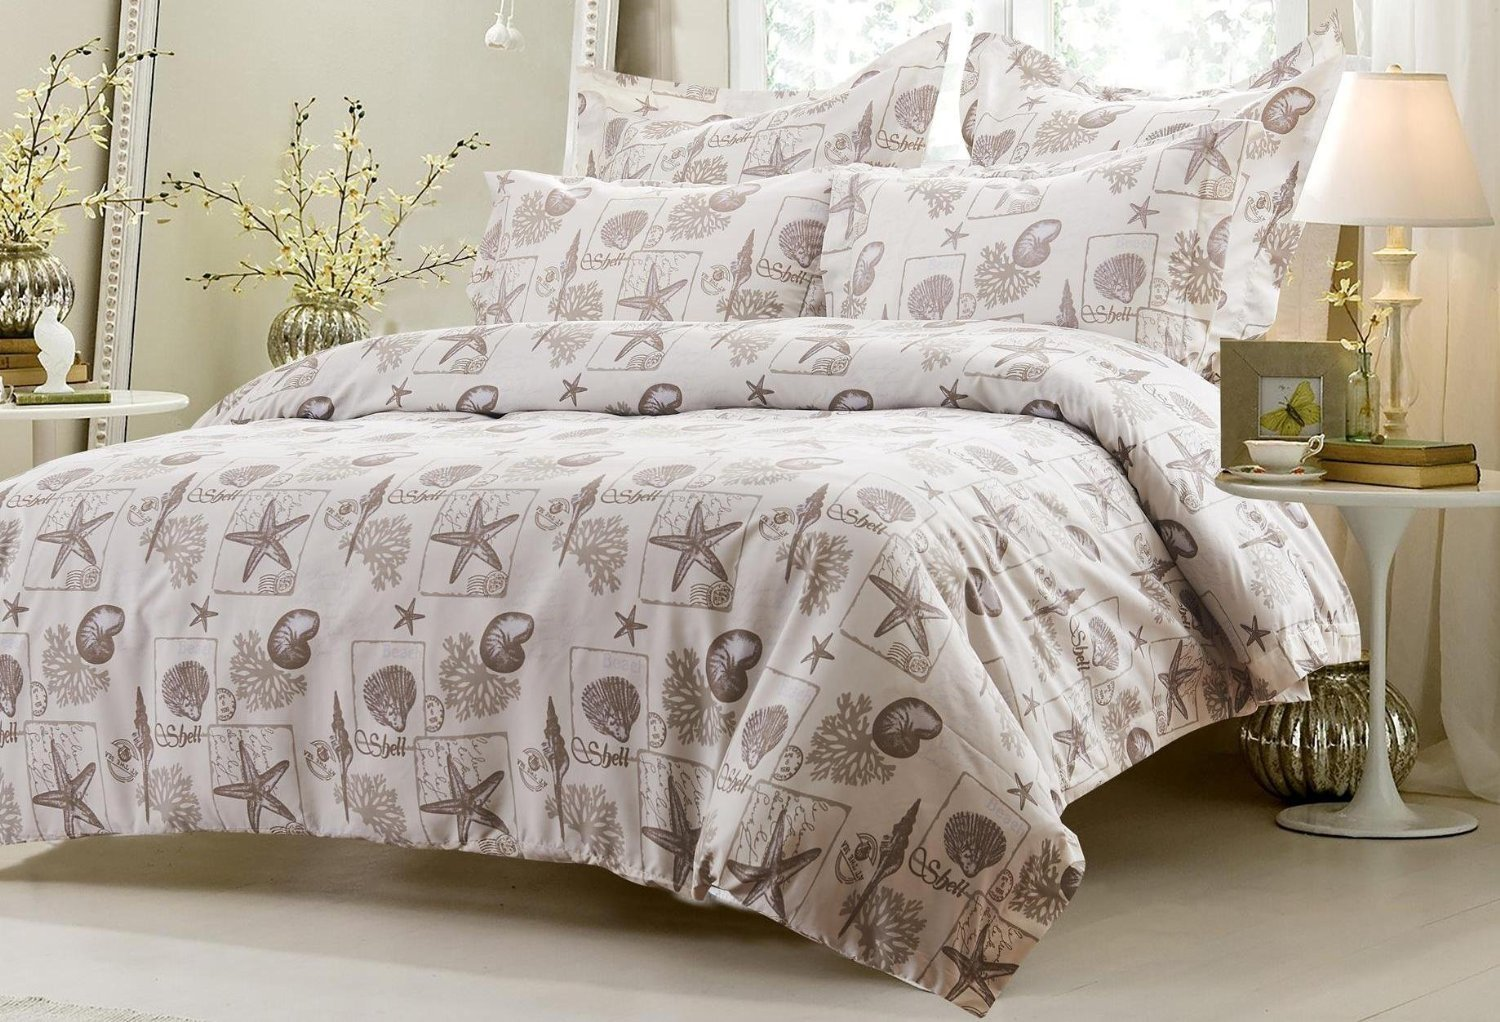 6pc Seashell Beige Bedding Set-Includes Comforter and Duvet Cover Set Full/Queen